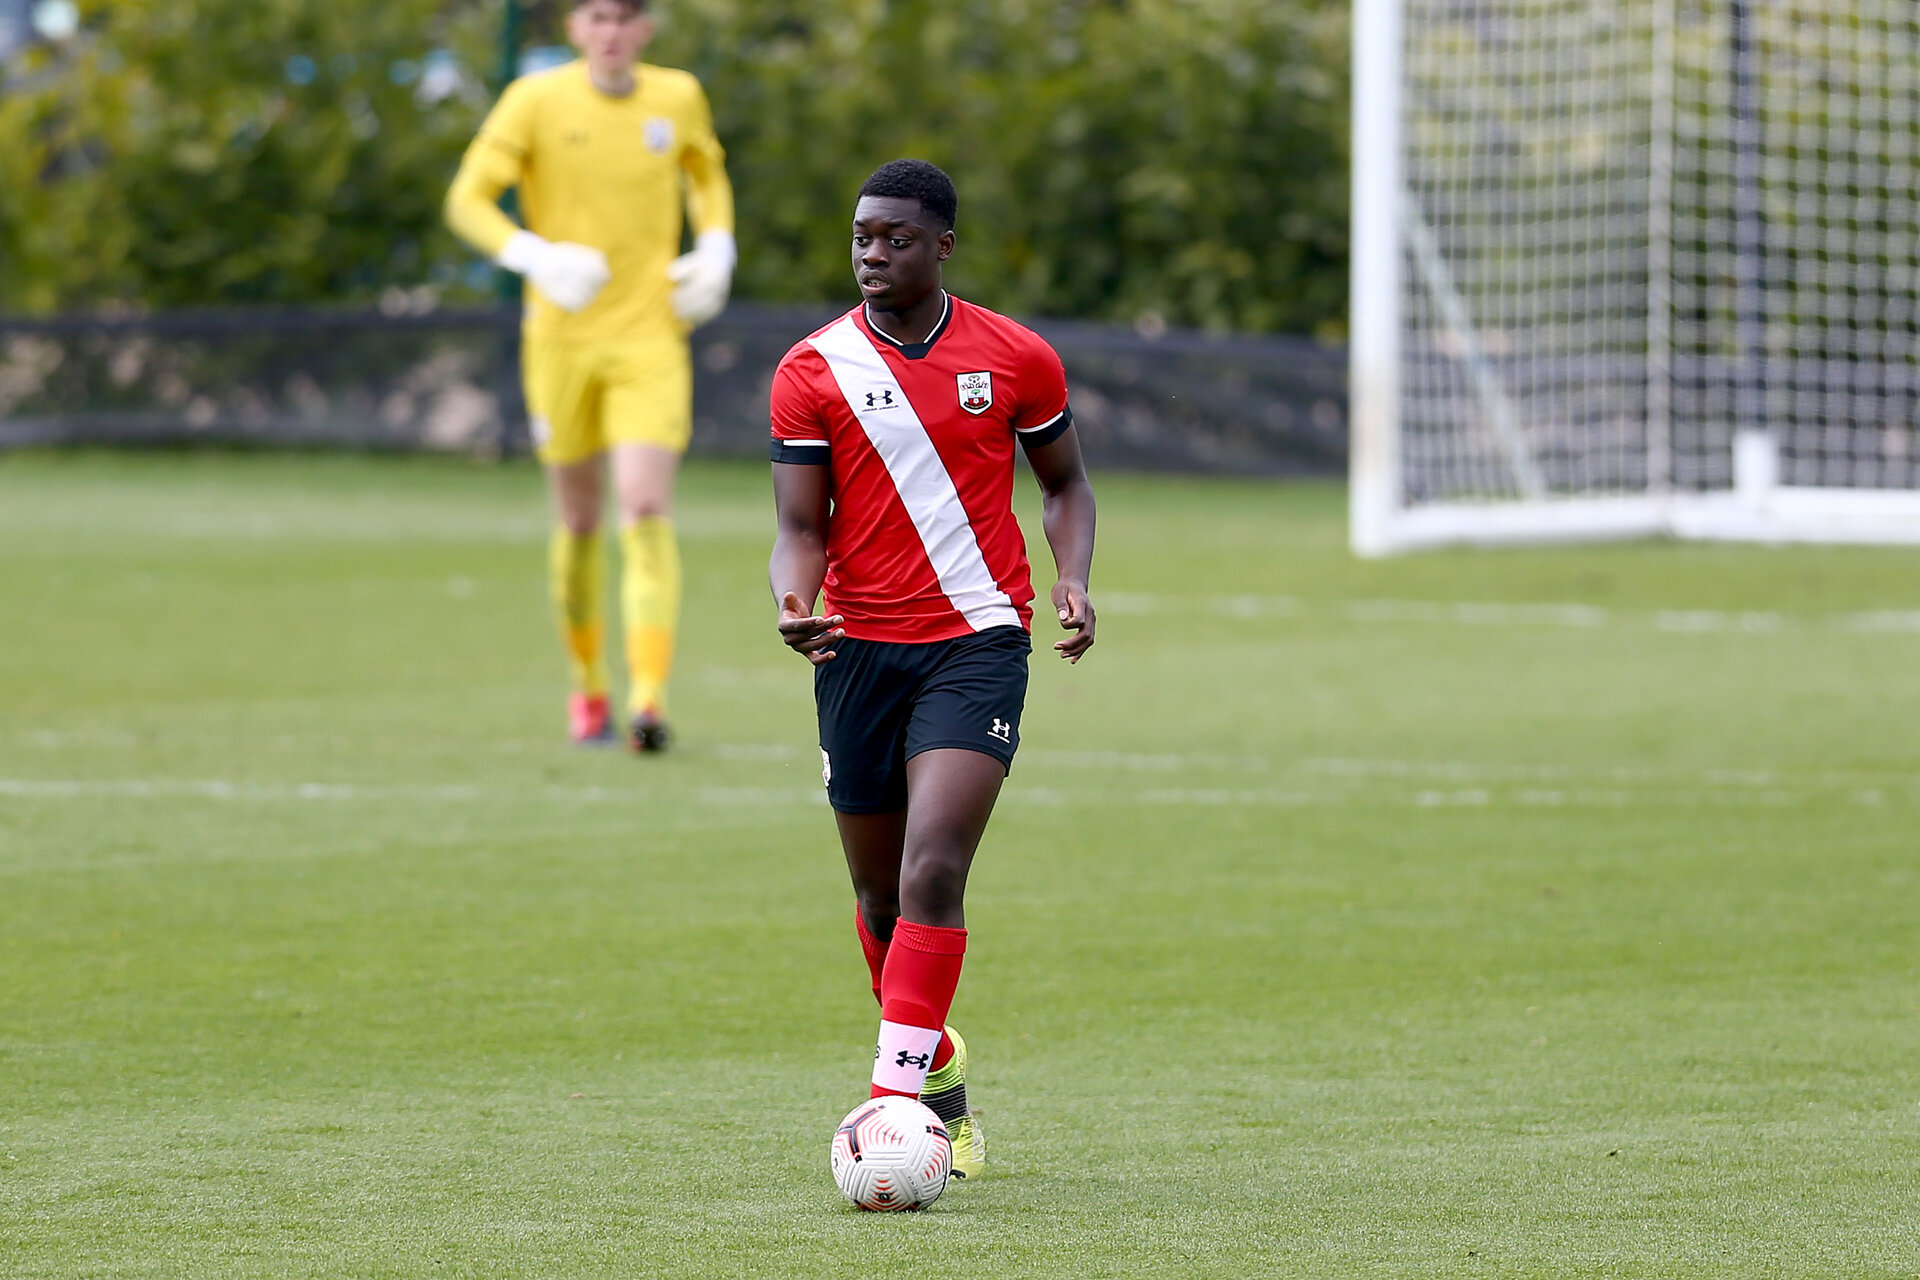 READING, ENGLAND - APRIL 27: Leon Pambou of Southampton during the Premier League U18s match between Reading and Southampton U18s at Bearwood Park Training Ground on April 27, 2021 in Reading, England. (Photo by Isabelle Field/Southampton FC via Getty Images)